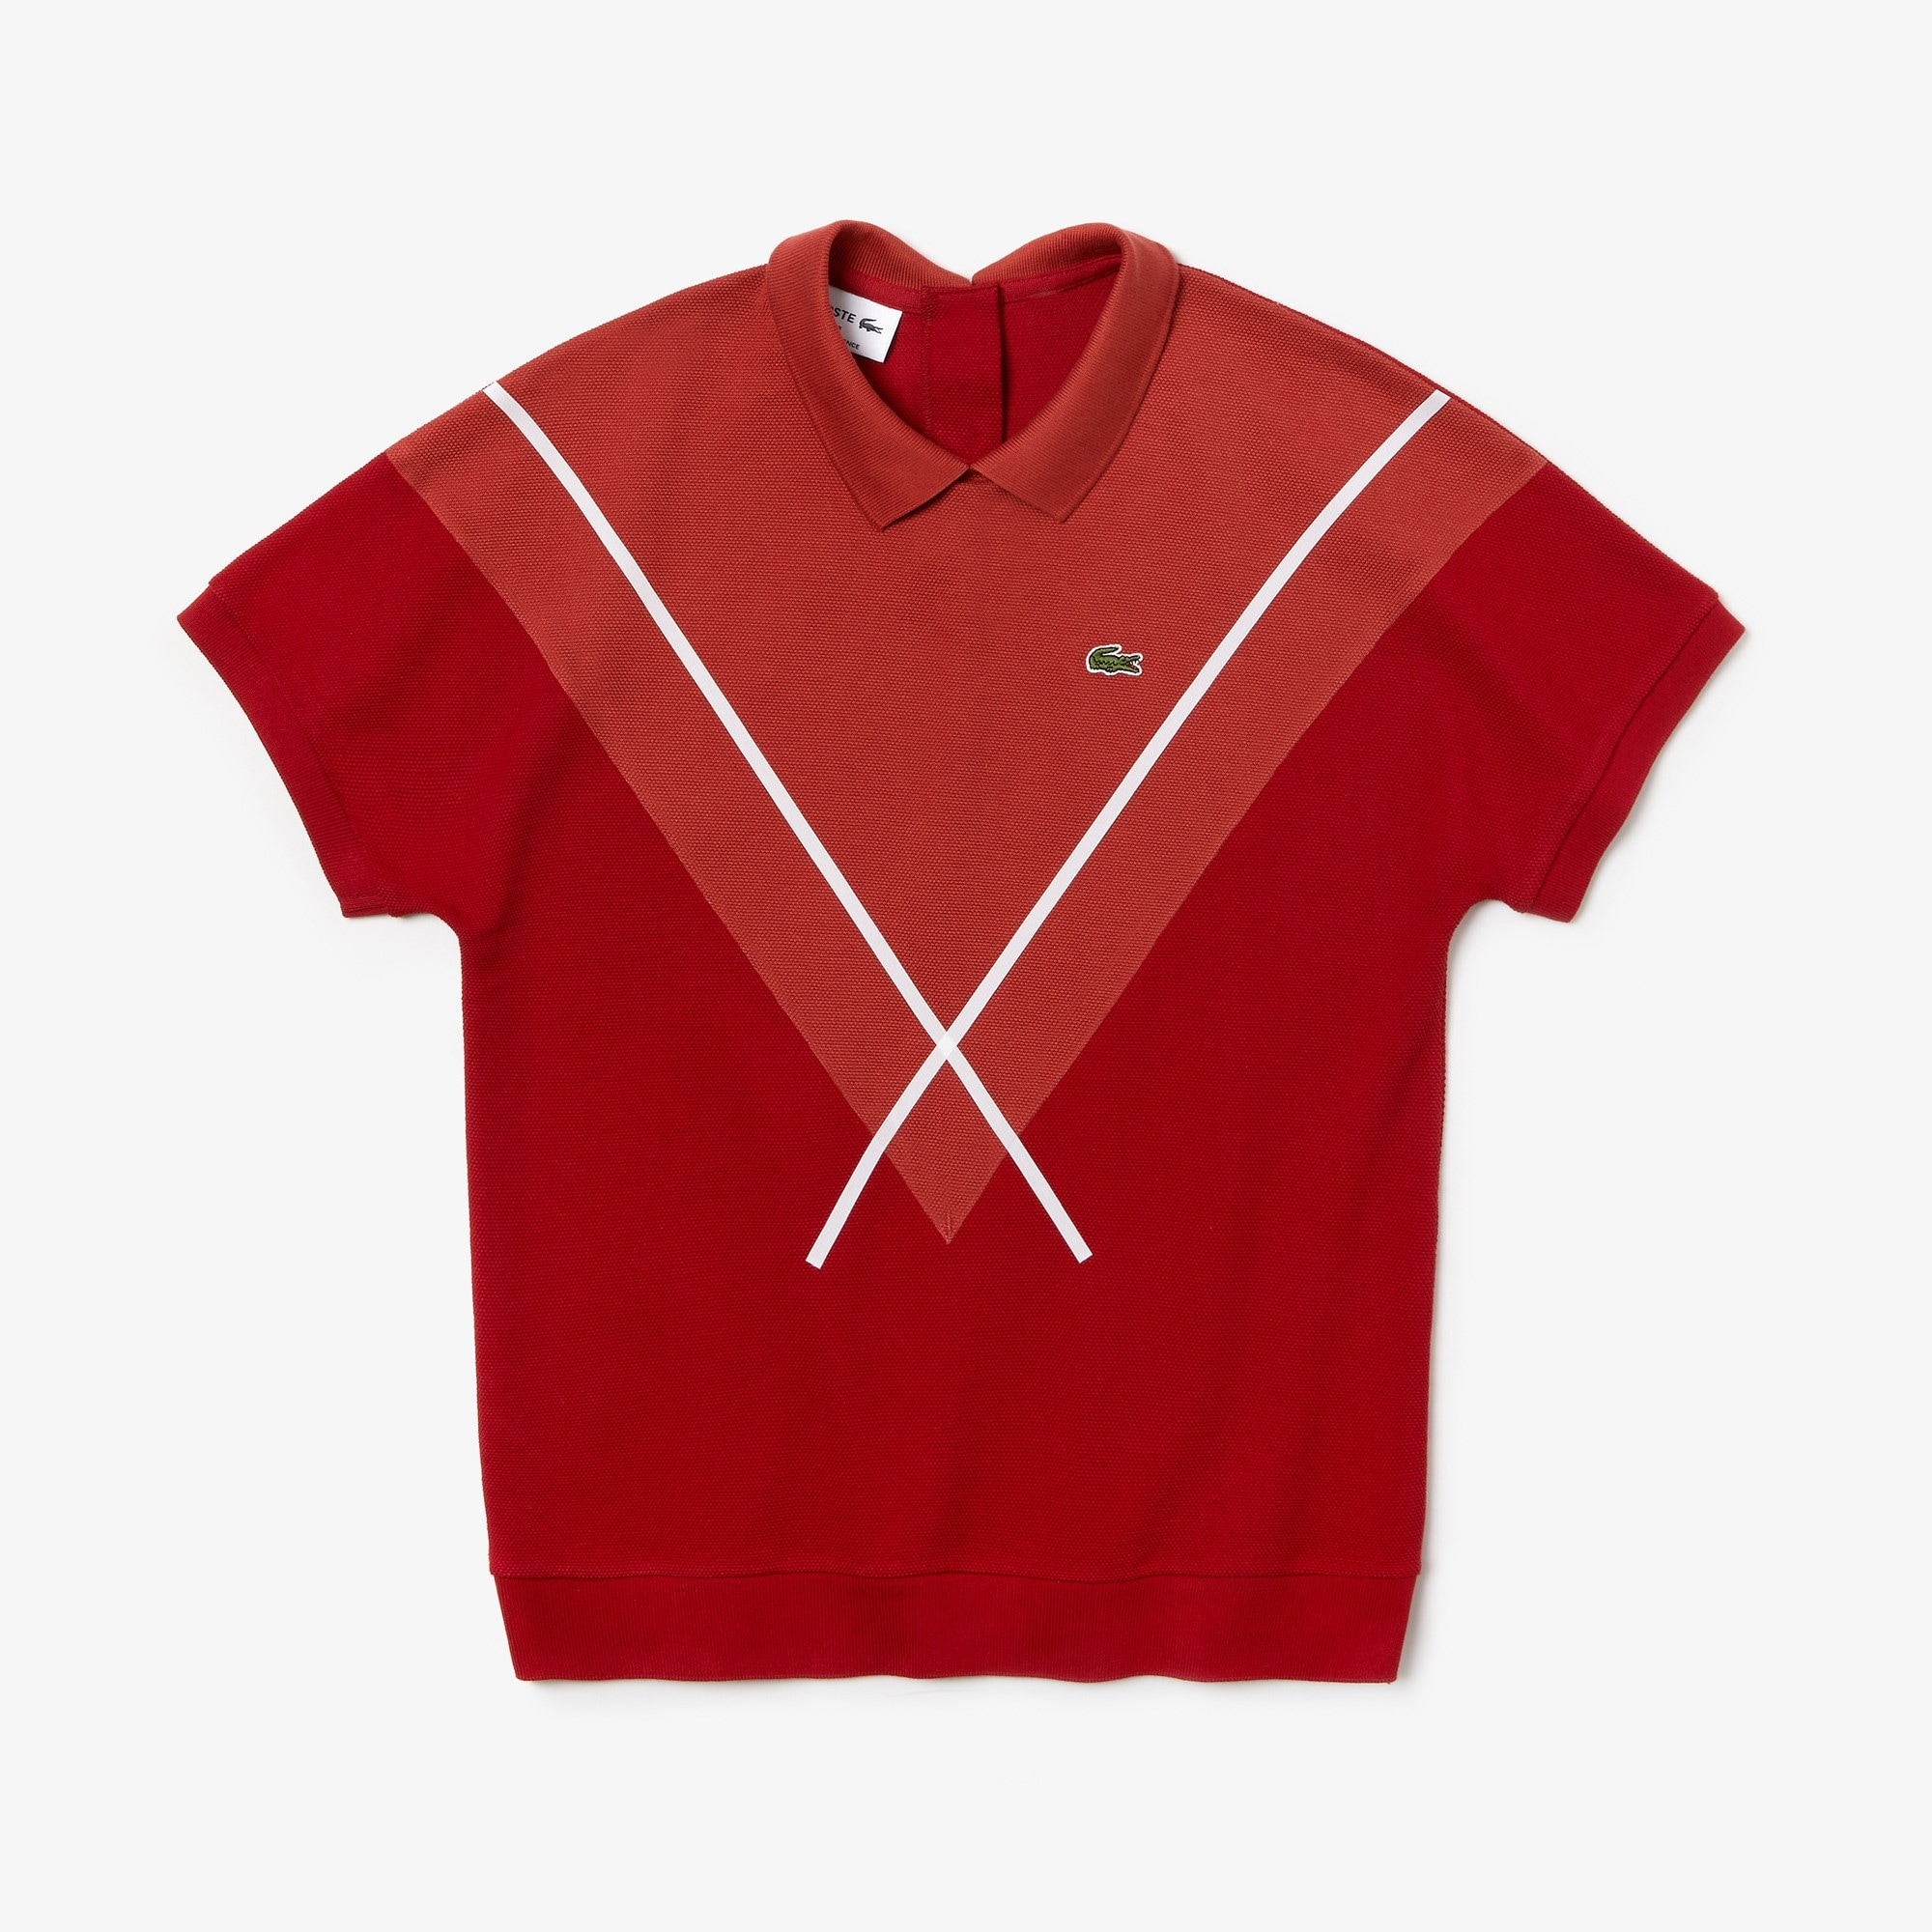 best sneakers new arrivals available Women's Lacoste Made In France Jacquard Patterned Cotton Piqué Polo Shirt